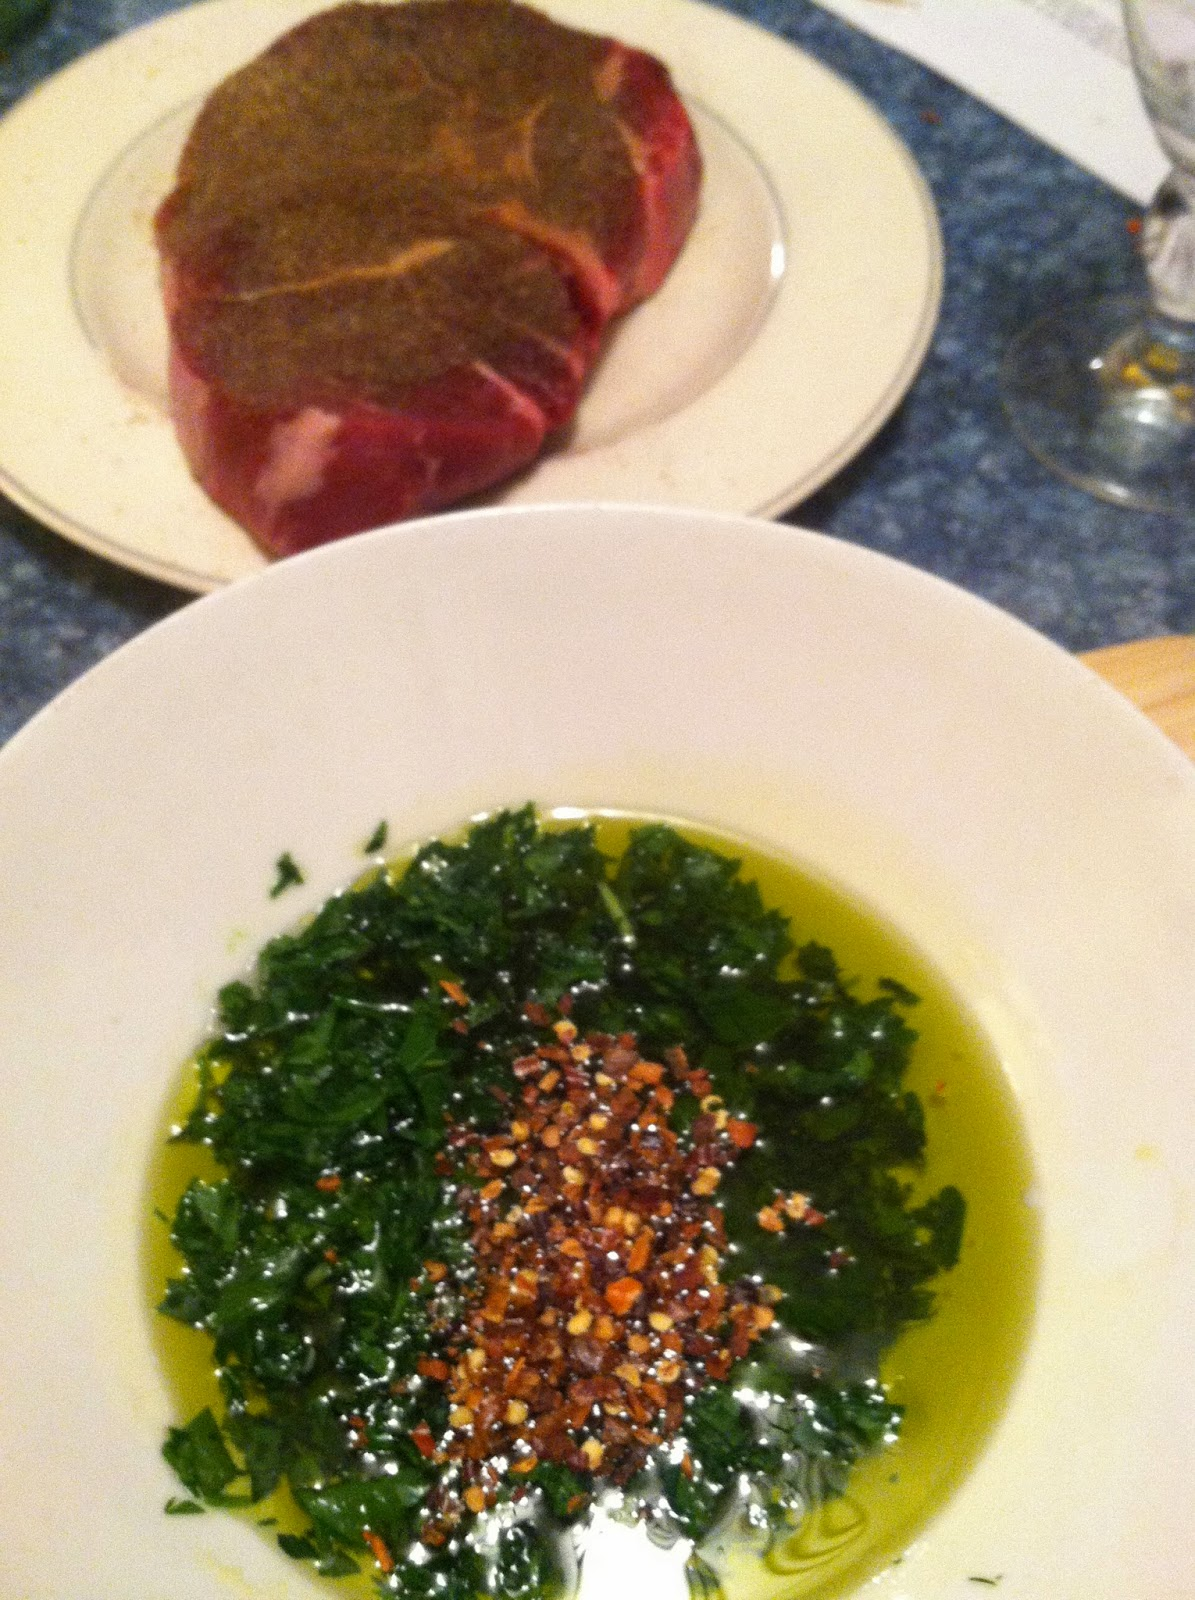 Sirloin steak with spice rub along with chimichurri sauce. Cooking Chat recipe.